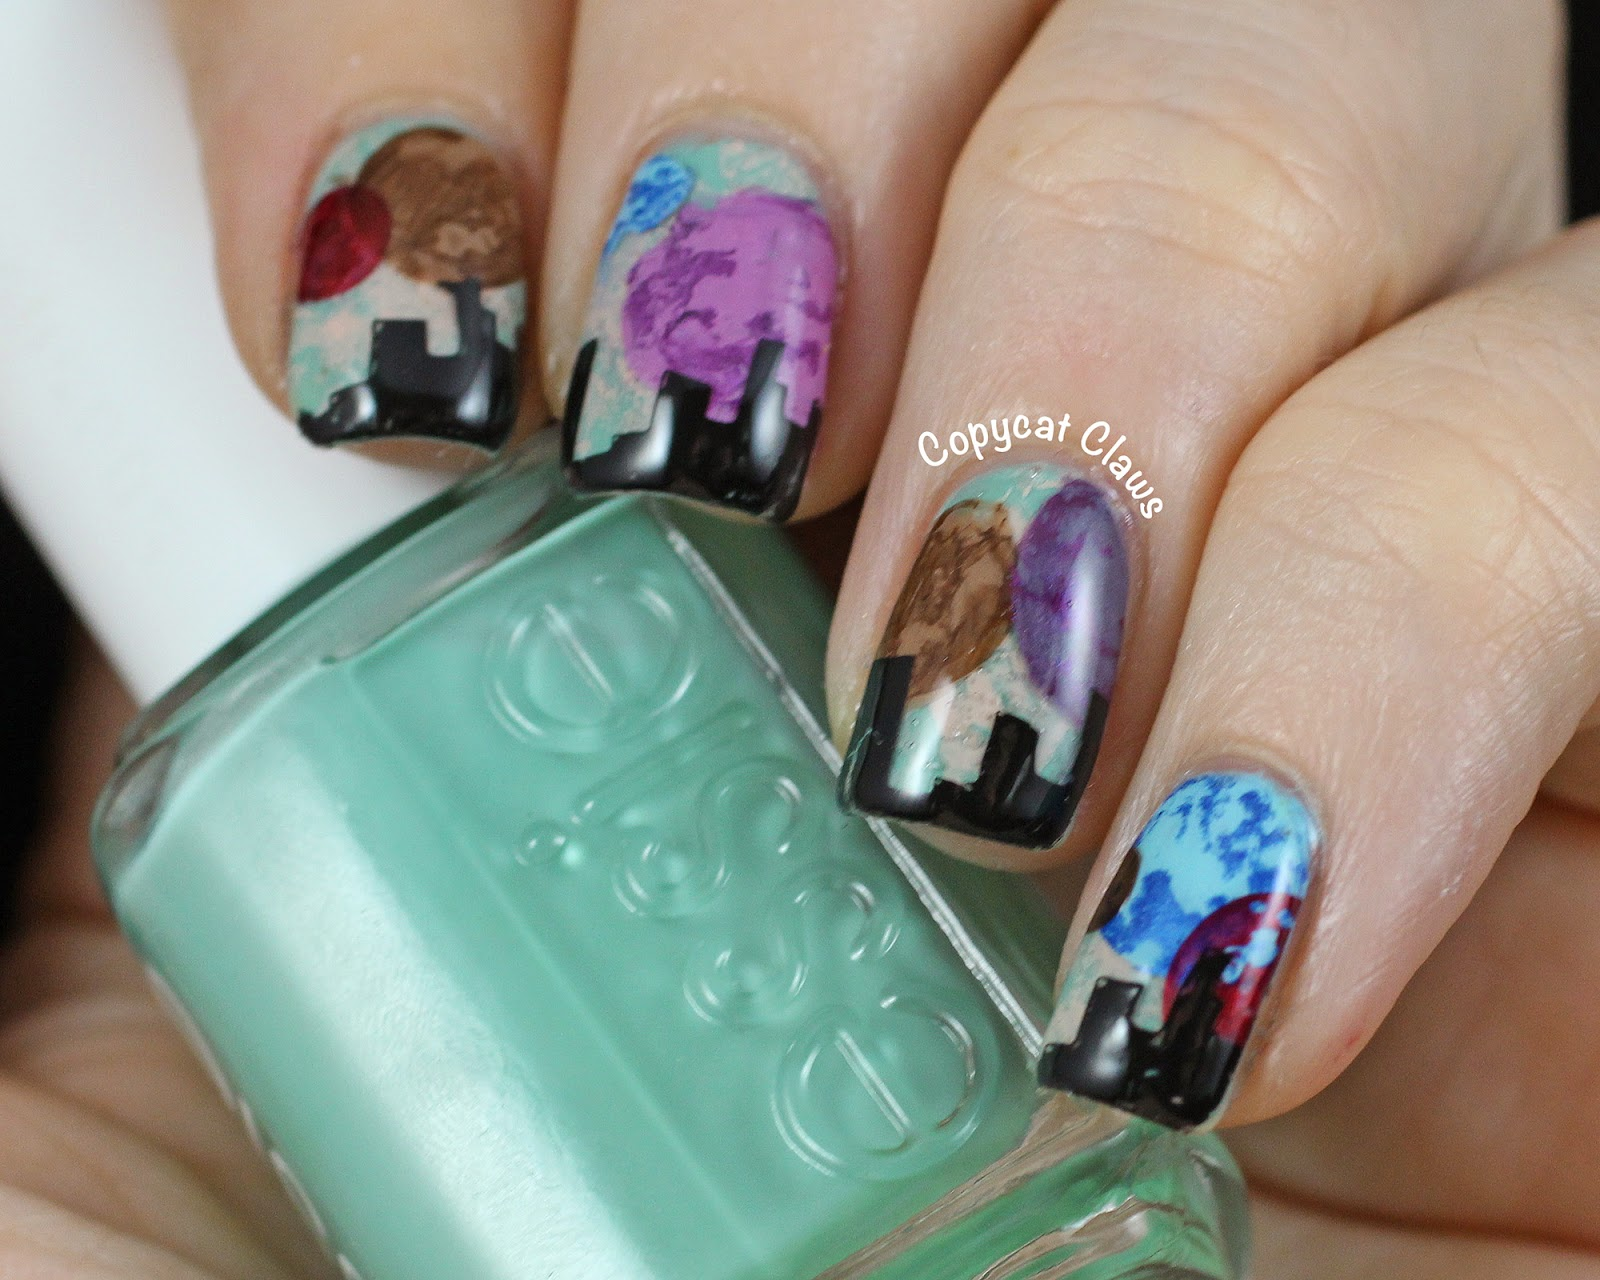 Copycat claws sunday stamping inspired by a tv show youre watching prinsesfo Choice Image